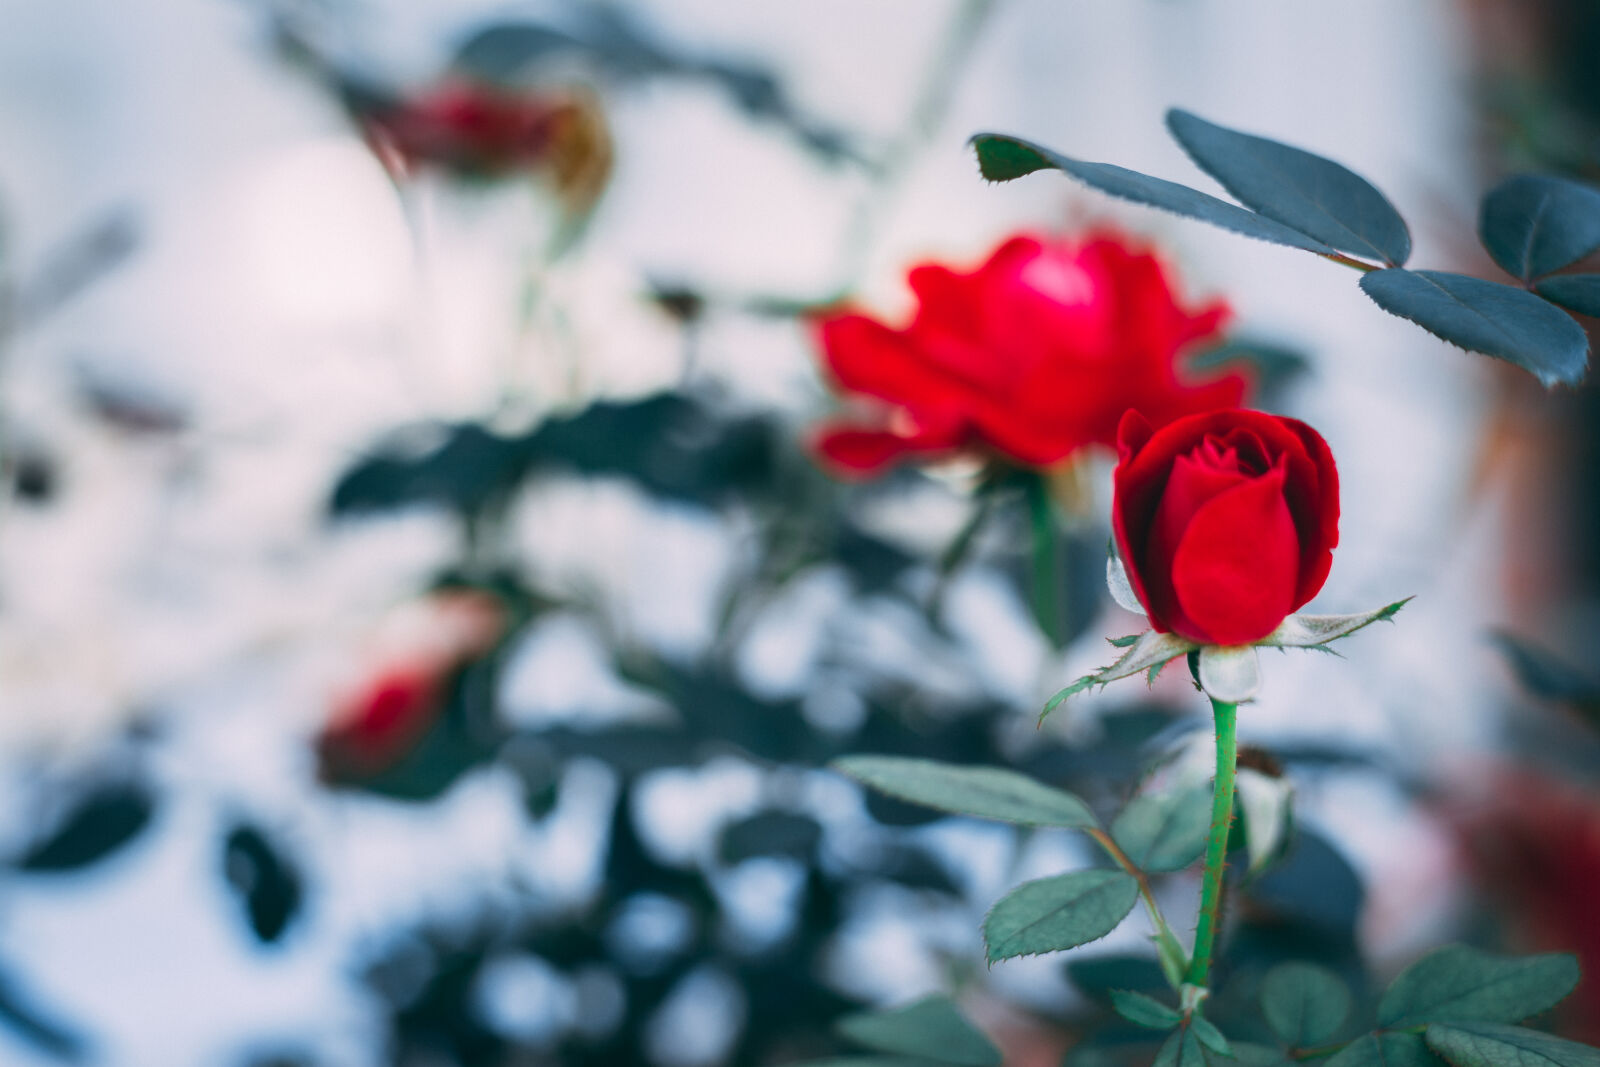 """Nikon D5200 sample photo. """"Flower, red, rose"""" photography"""